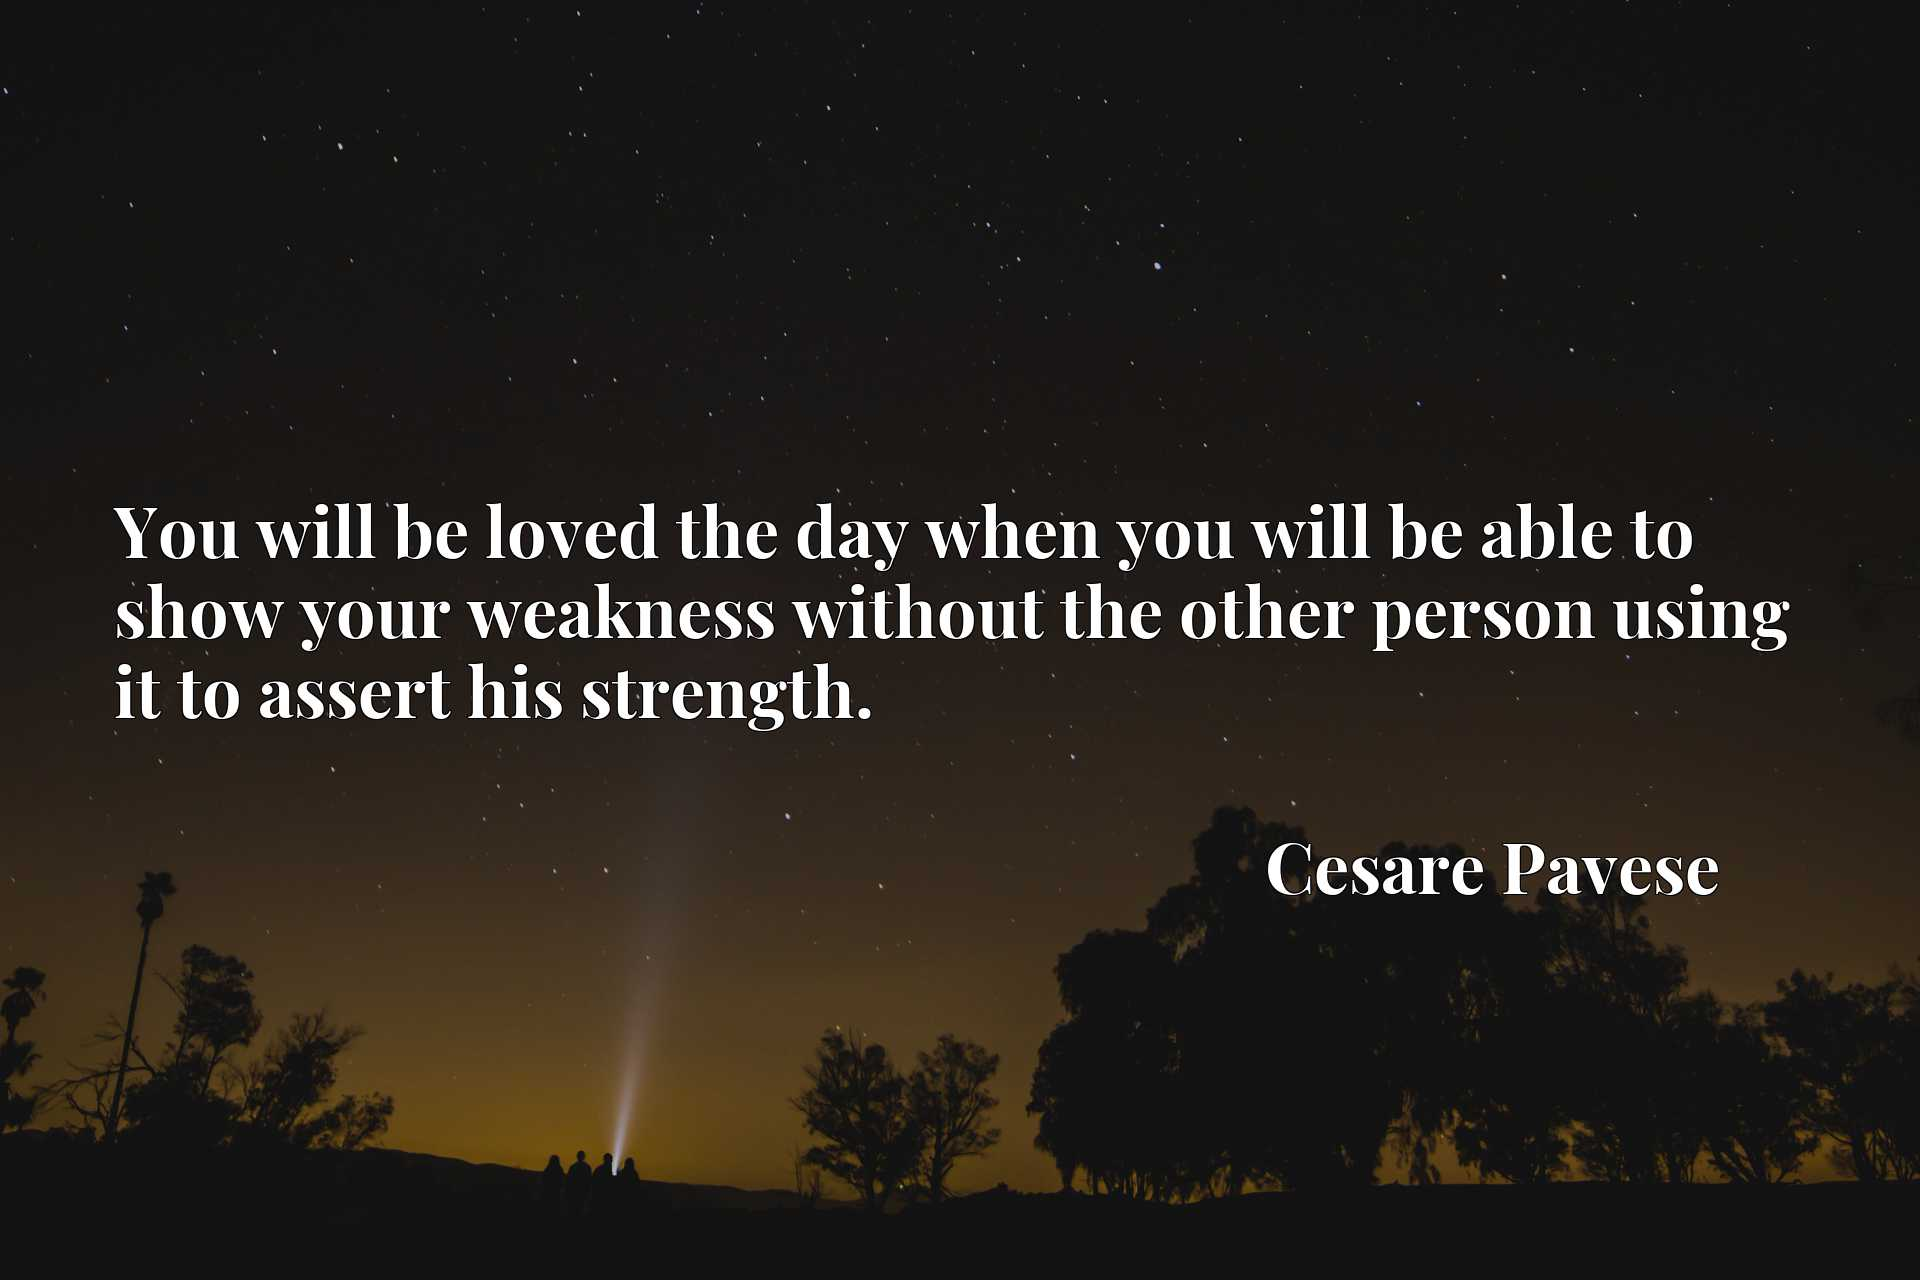 You will be loved the day when you will be able to show your weakness without the other person using it to assert his strength.